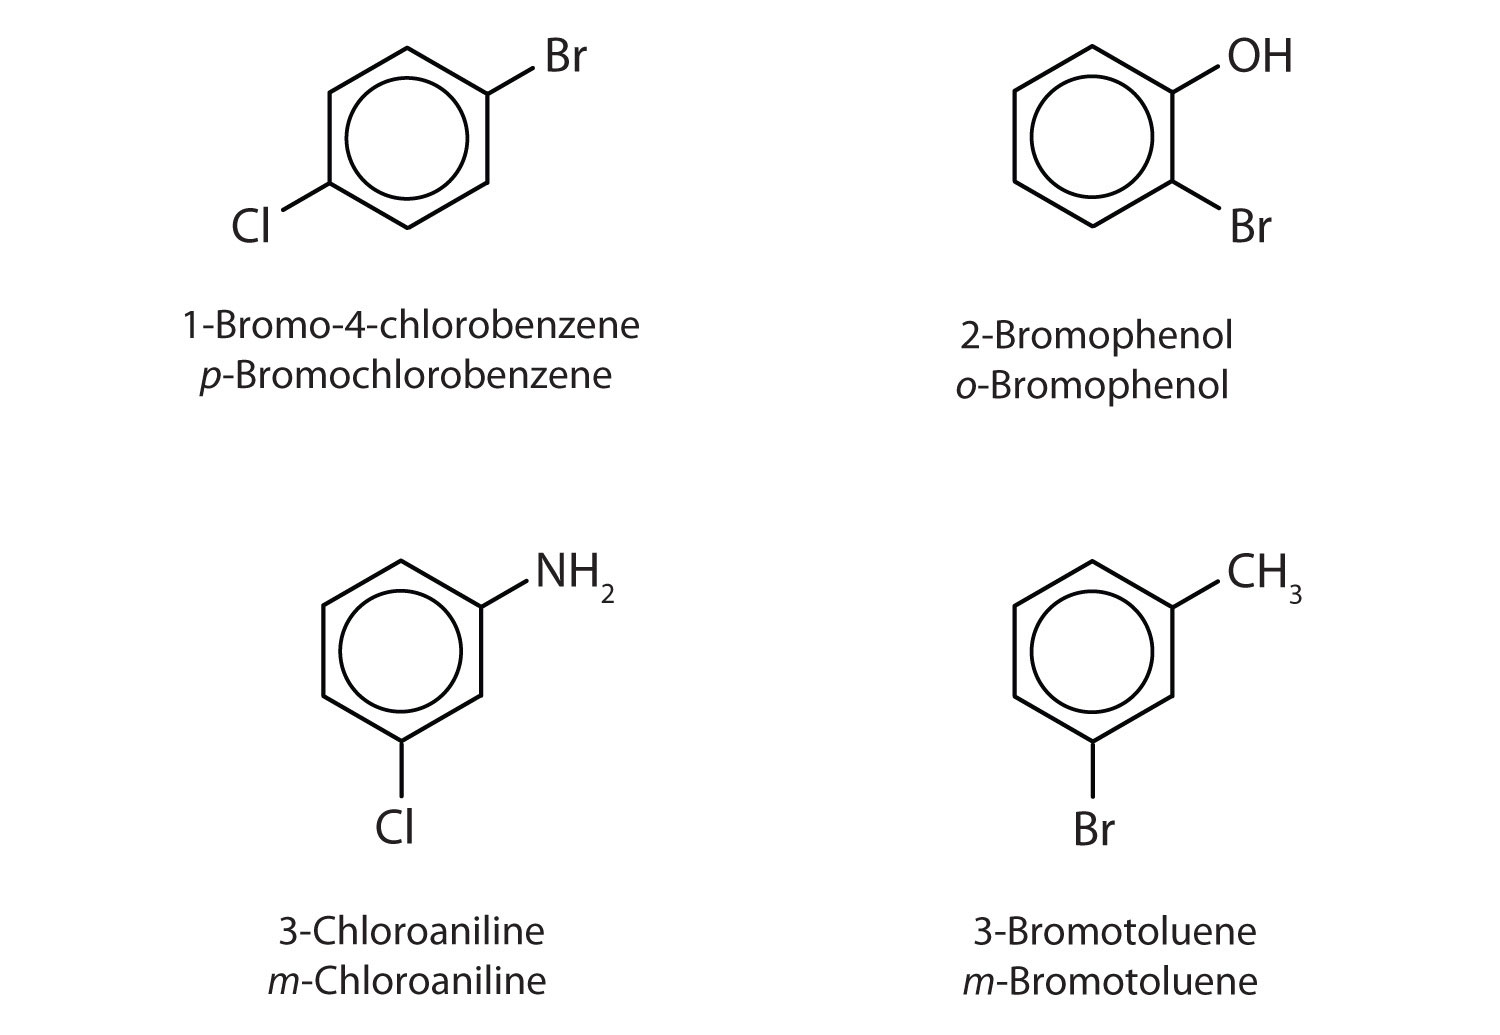 Aromatic compounds with substituents. The indicated names show the presence of the substituent.